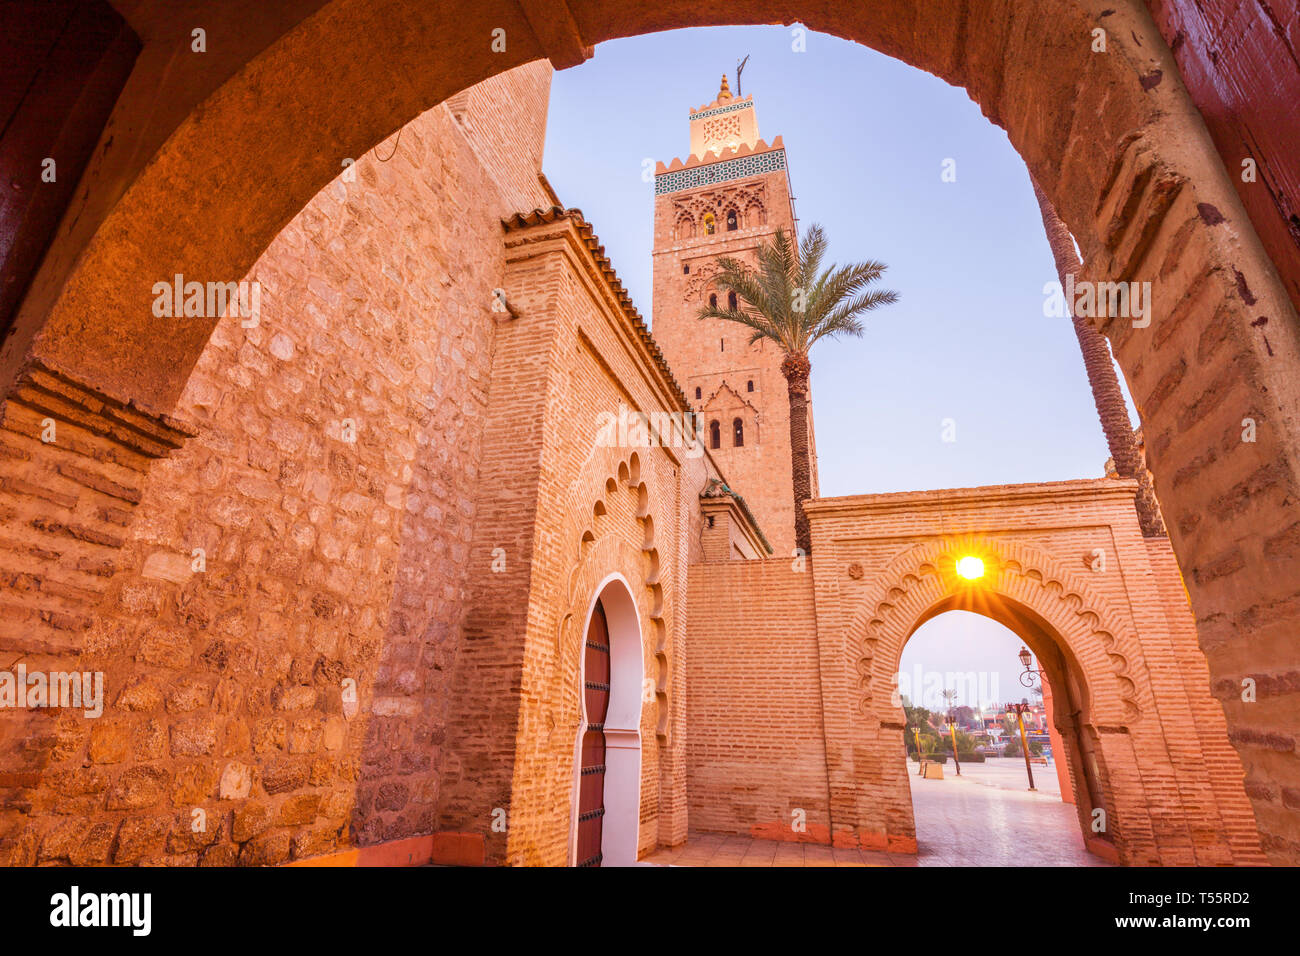 Low angle view of Koutoubia Mosque in Marrakesh, Morocco Stock Photo